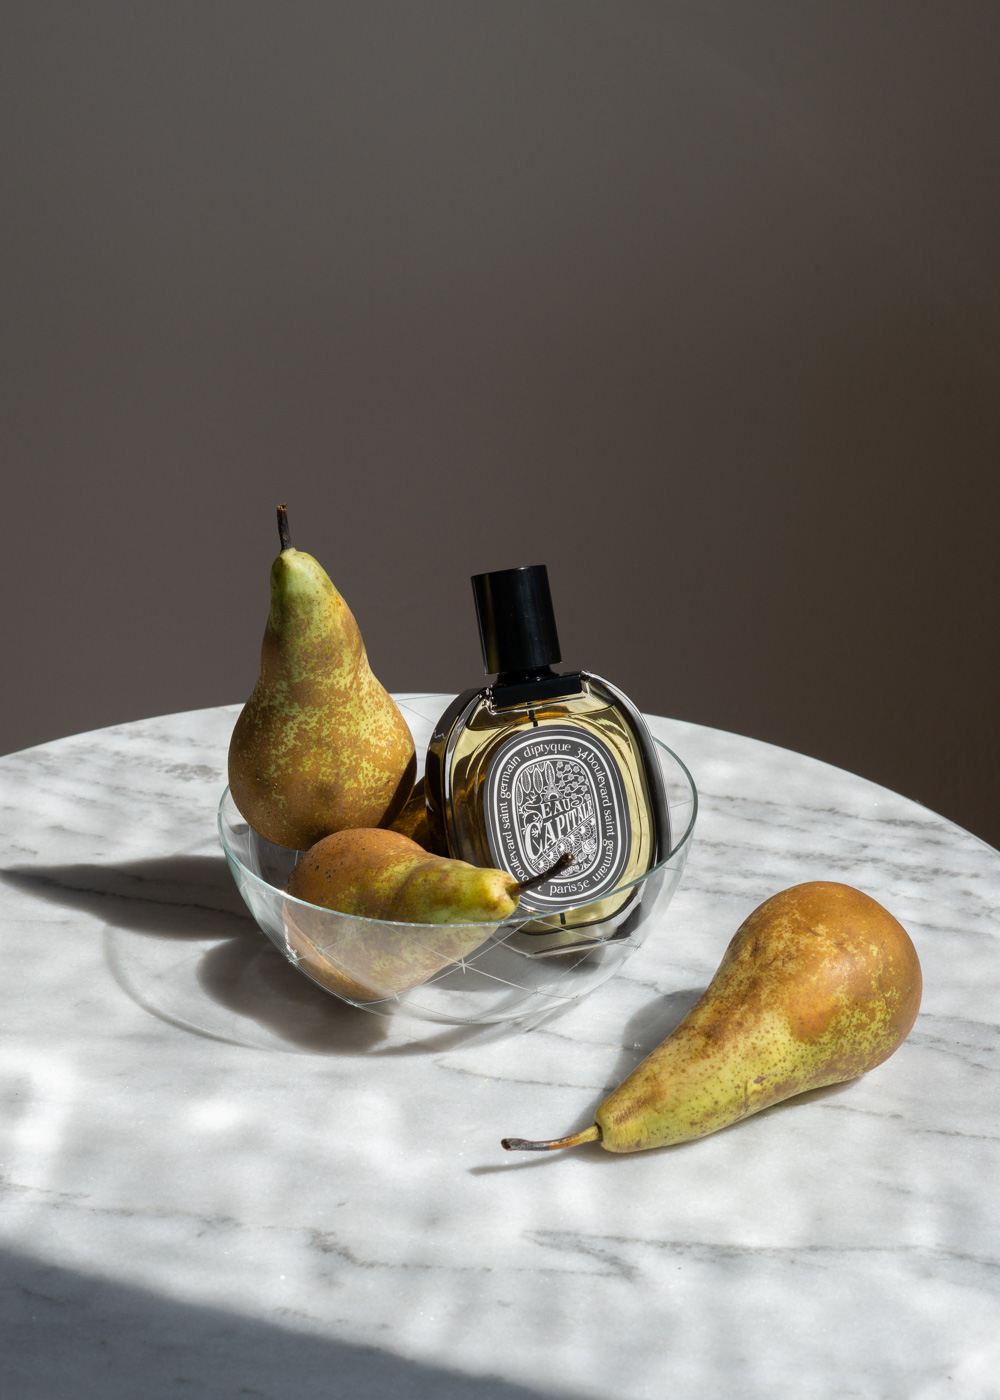 Diptyque Paris Perfume Parfum Fragrance Beauty Product Photography French Aesthetic Style Rg Daily Rebecca Goddard 16 Rg Daily